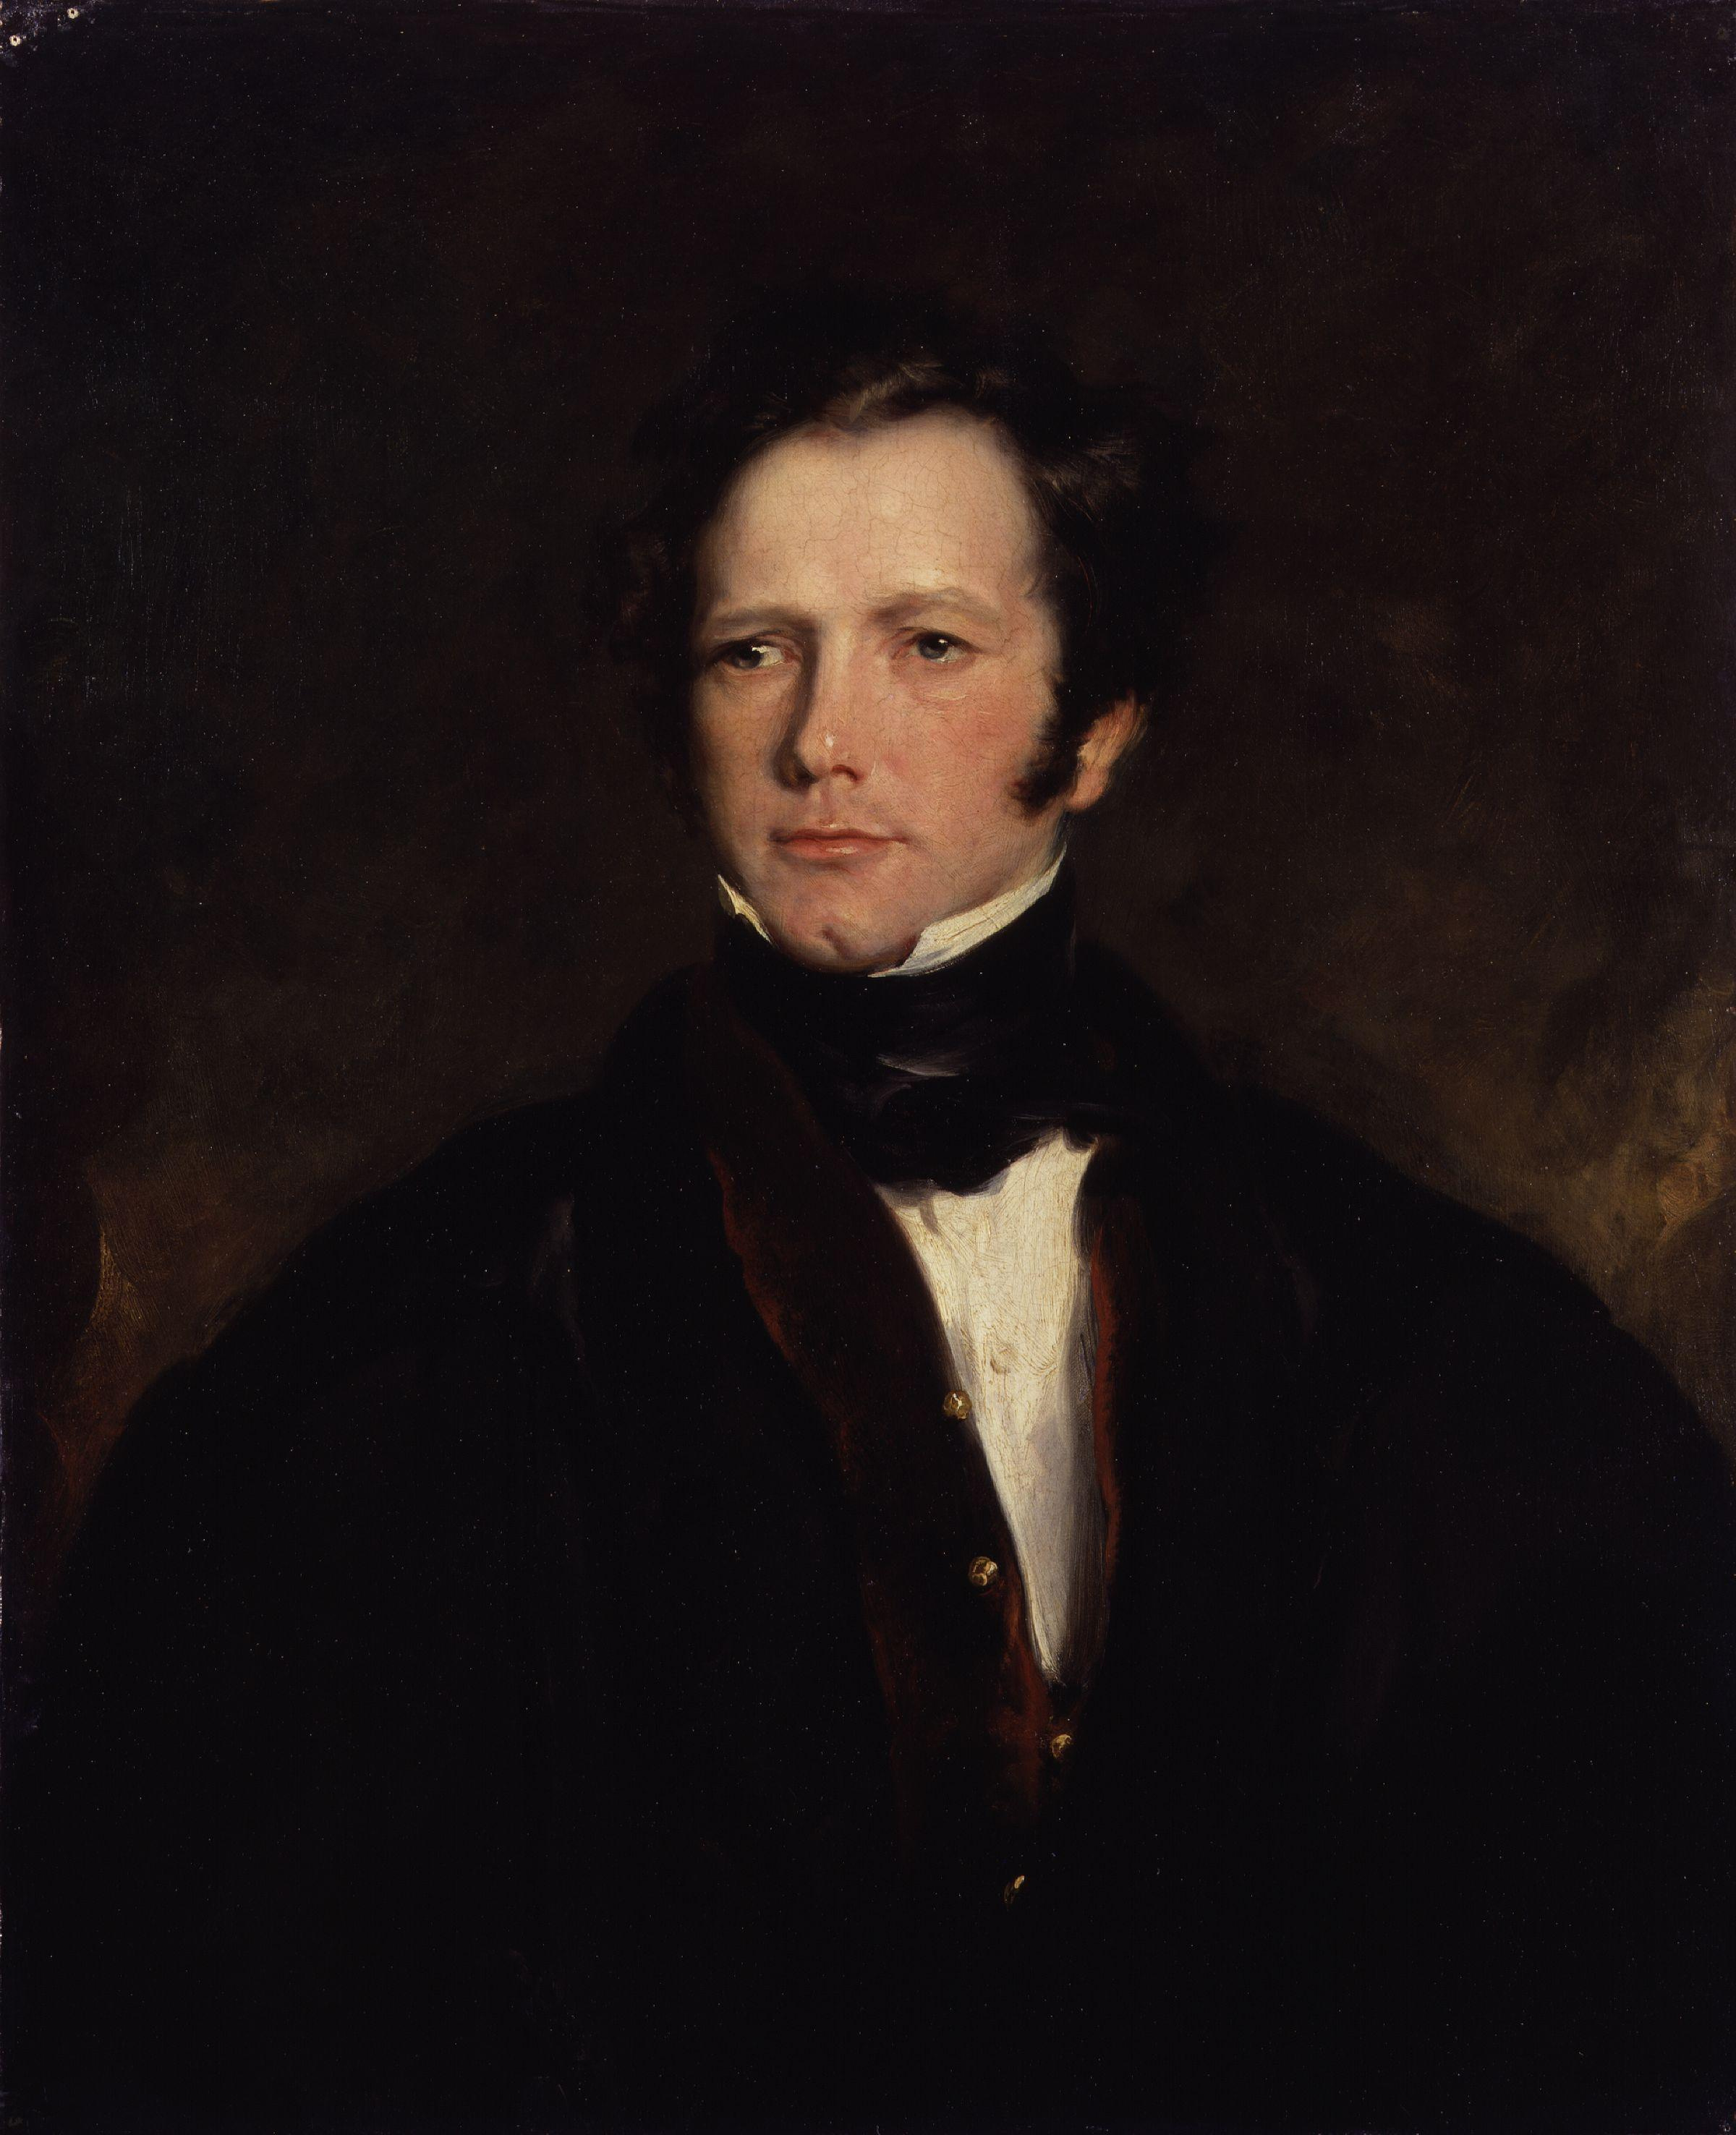 http://upload.wikimedia.org/wikipedia/commons/4/4a/Frederick_Marryat_by_John_Simpson.jpg